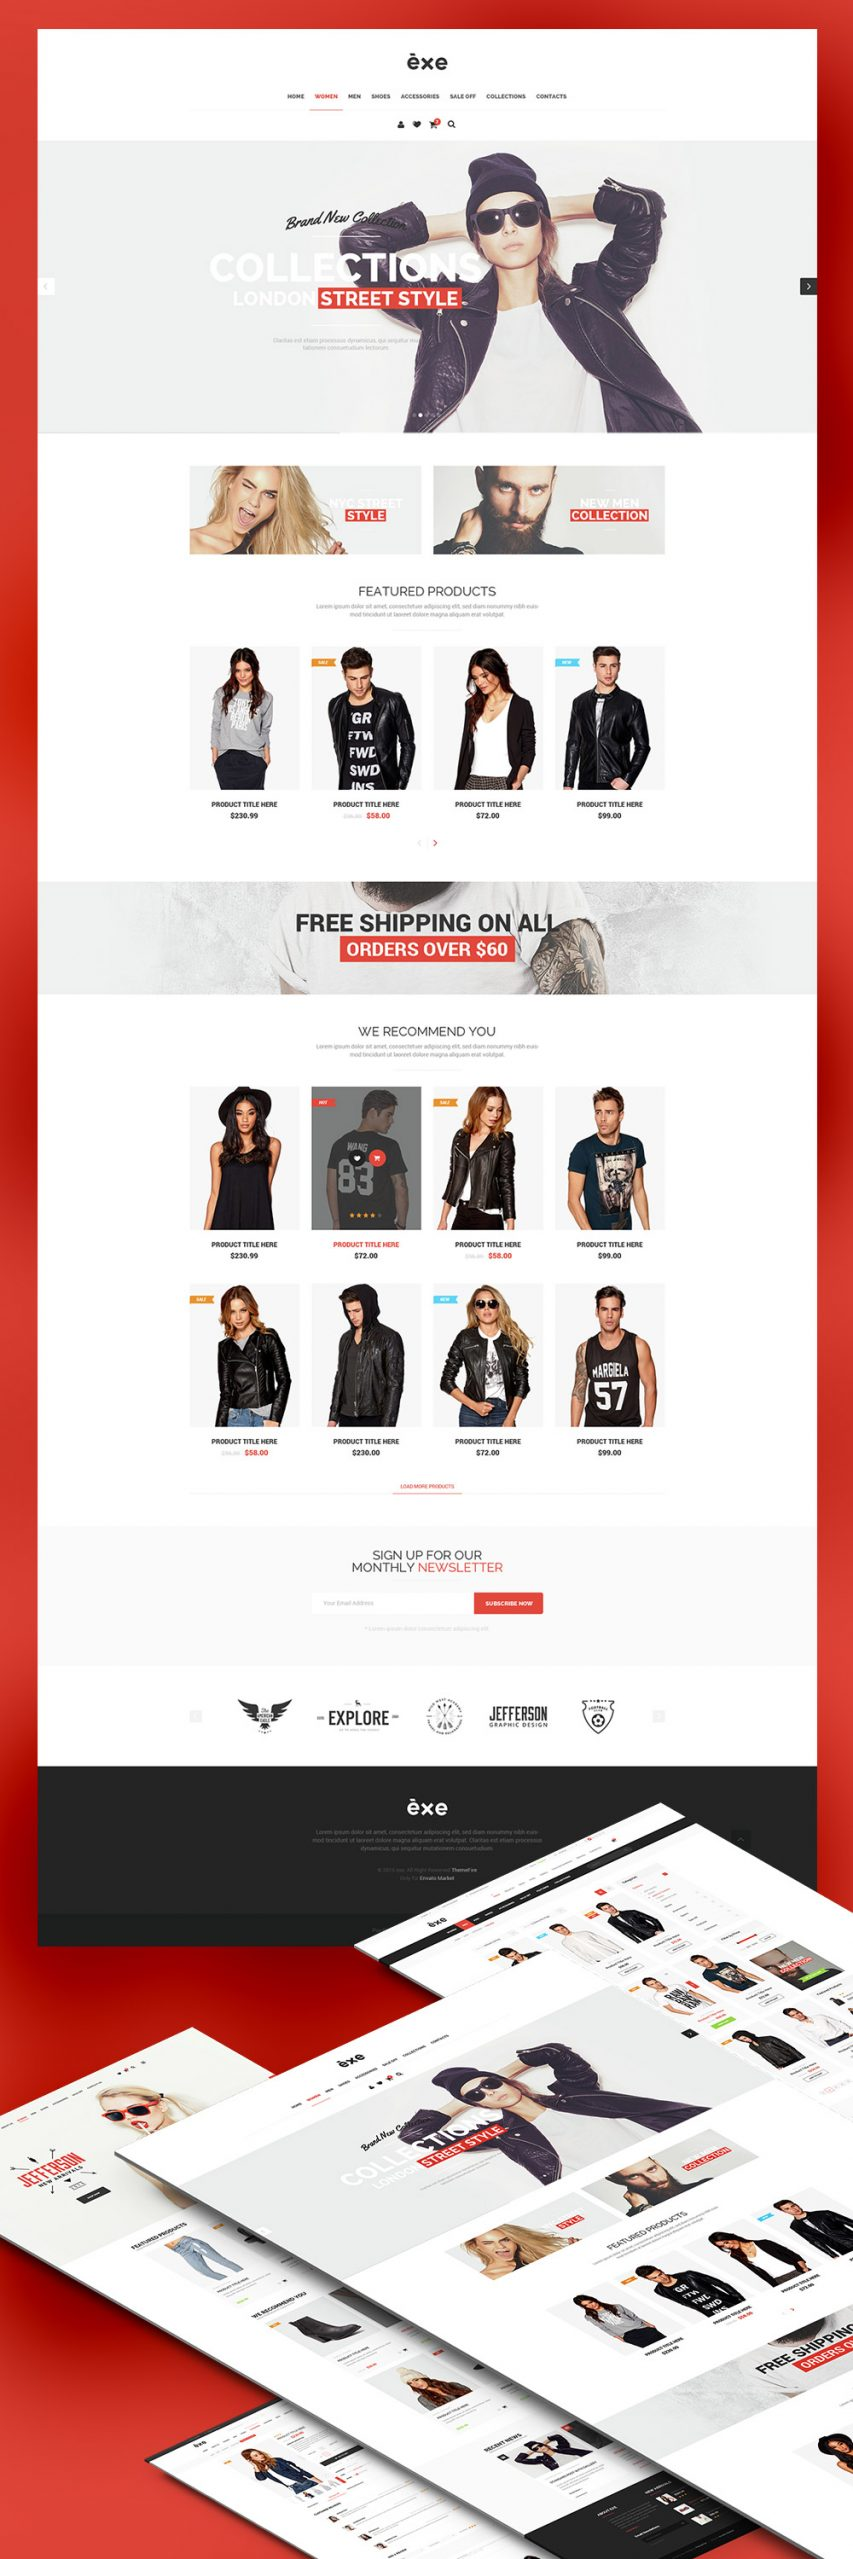 Multipurpose eCommerce WordPress Theme Free PSD Templates